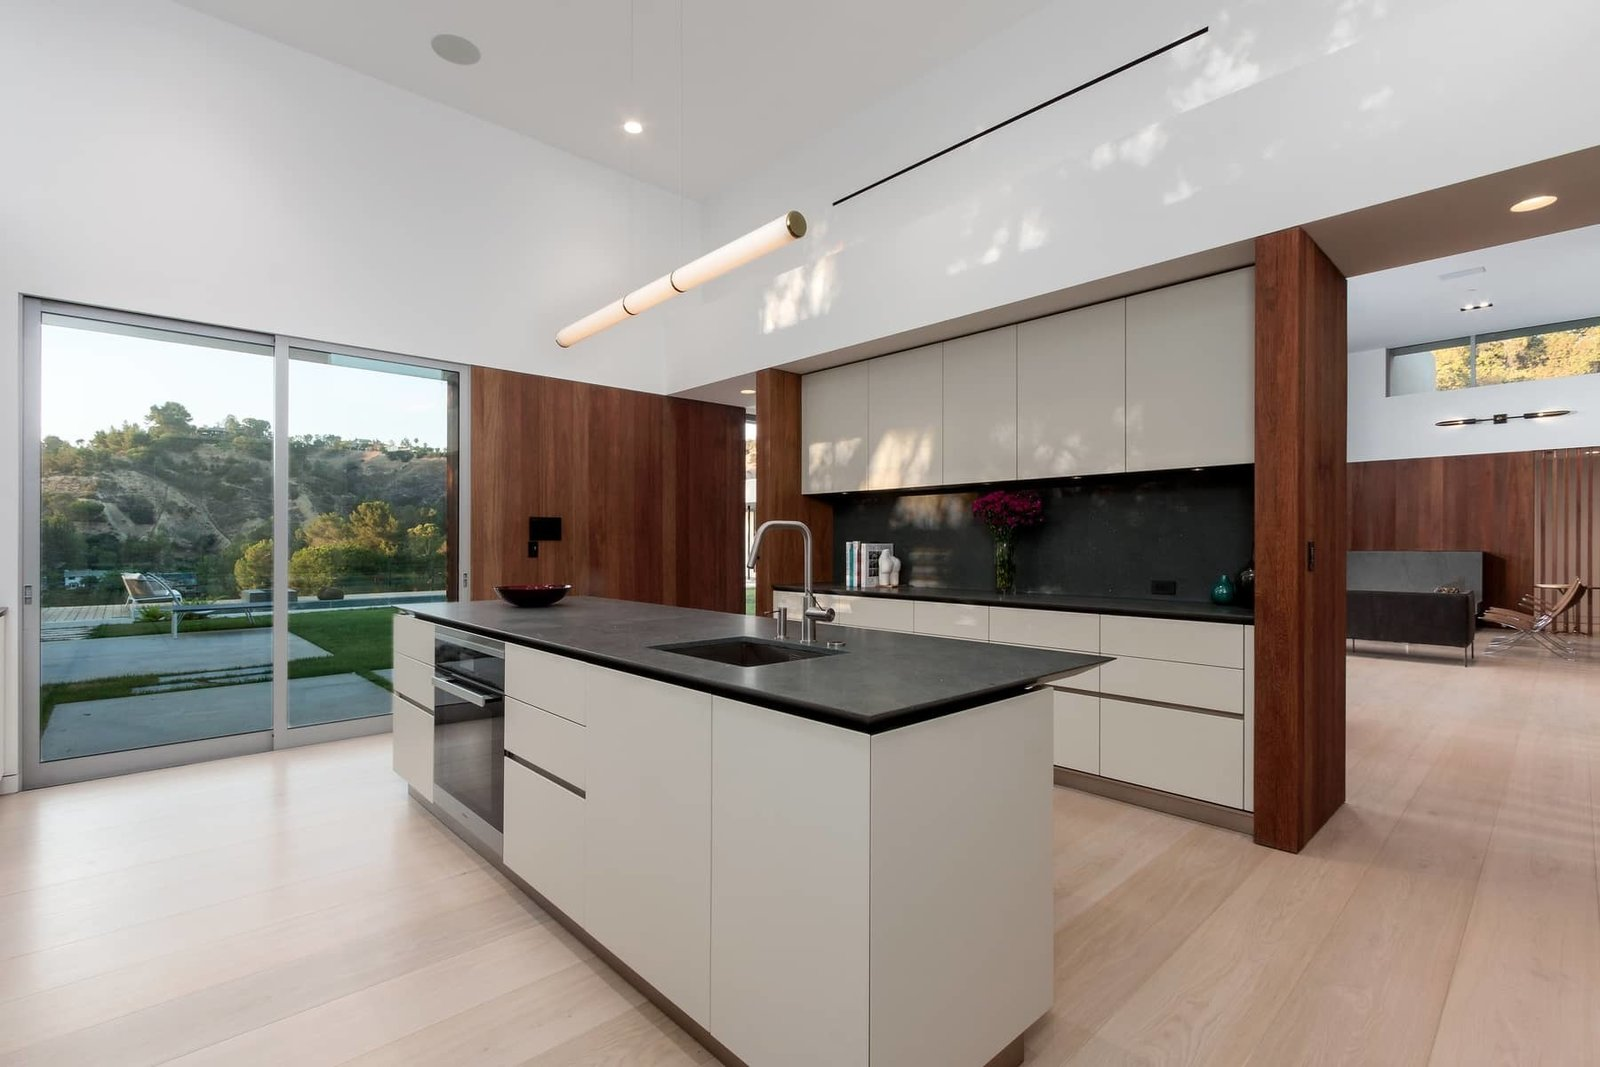 Boffi kitchen cabinets are a minimalist complement to Miele appliances, including a wine fridge and a built-in expresso machine. The Mini Endless pendant is by Roll & Hill.  Photo 5 of 10 in A Celeb-Worthy Home in Beverly Hills Asks $7.4M